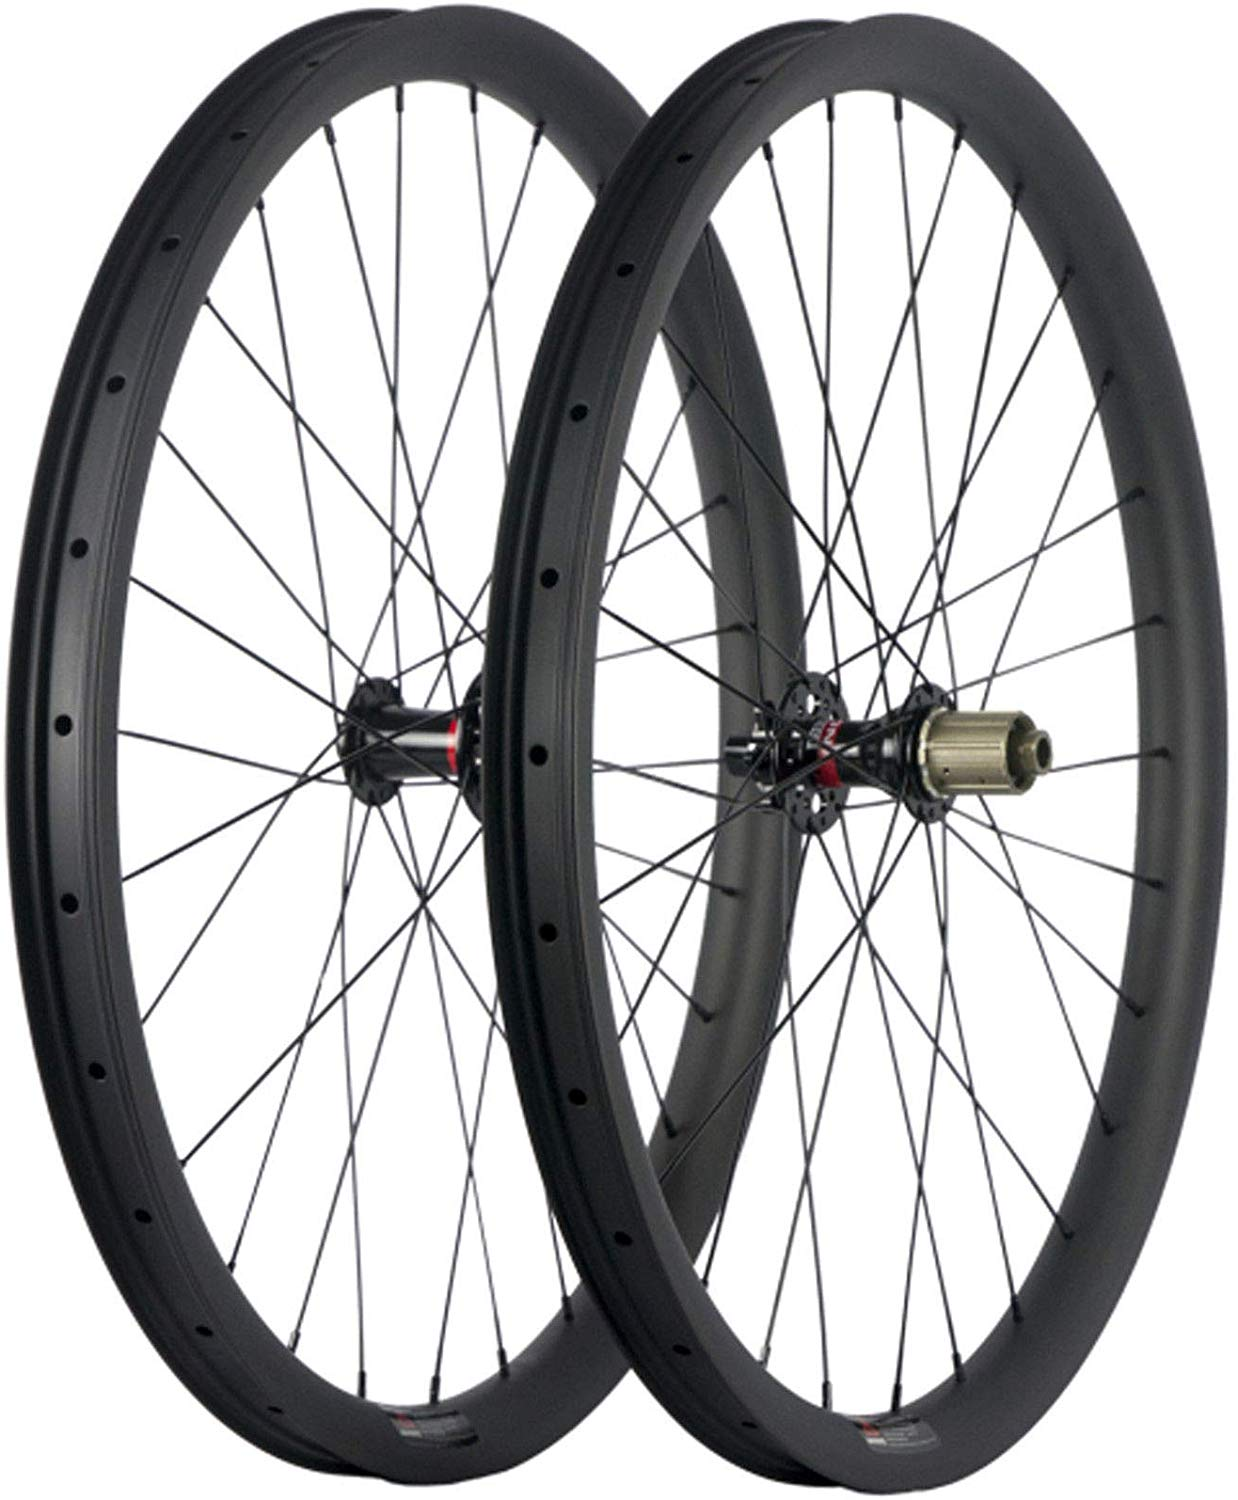 700c road bike wheels with 7speed Cog✓ tyre tube✓ reflector✓ disc ✓quick release